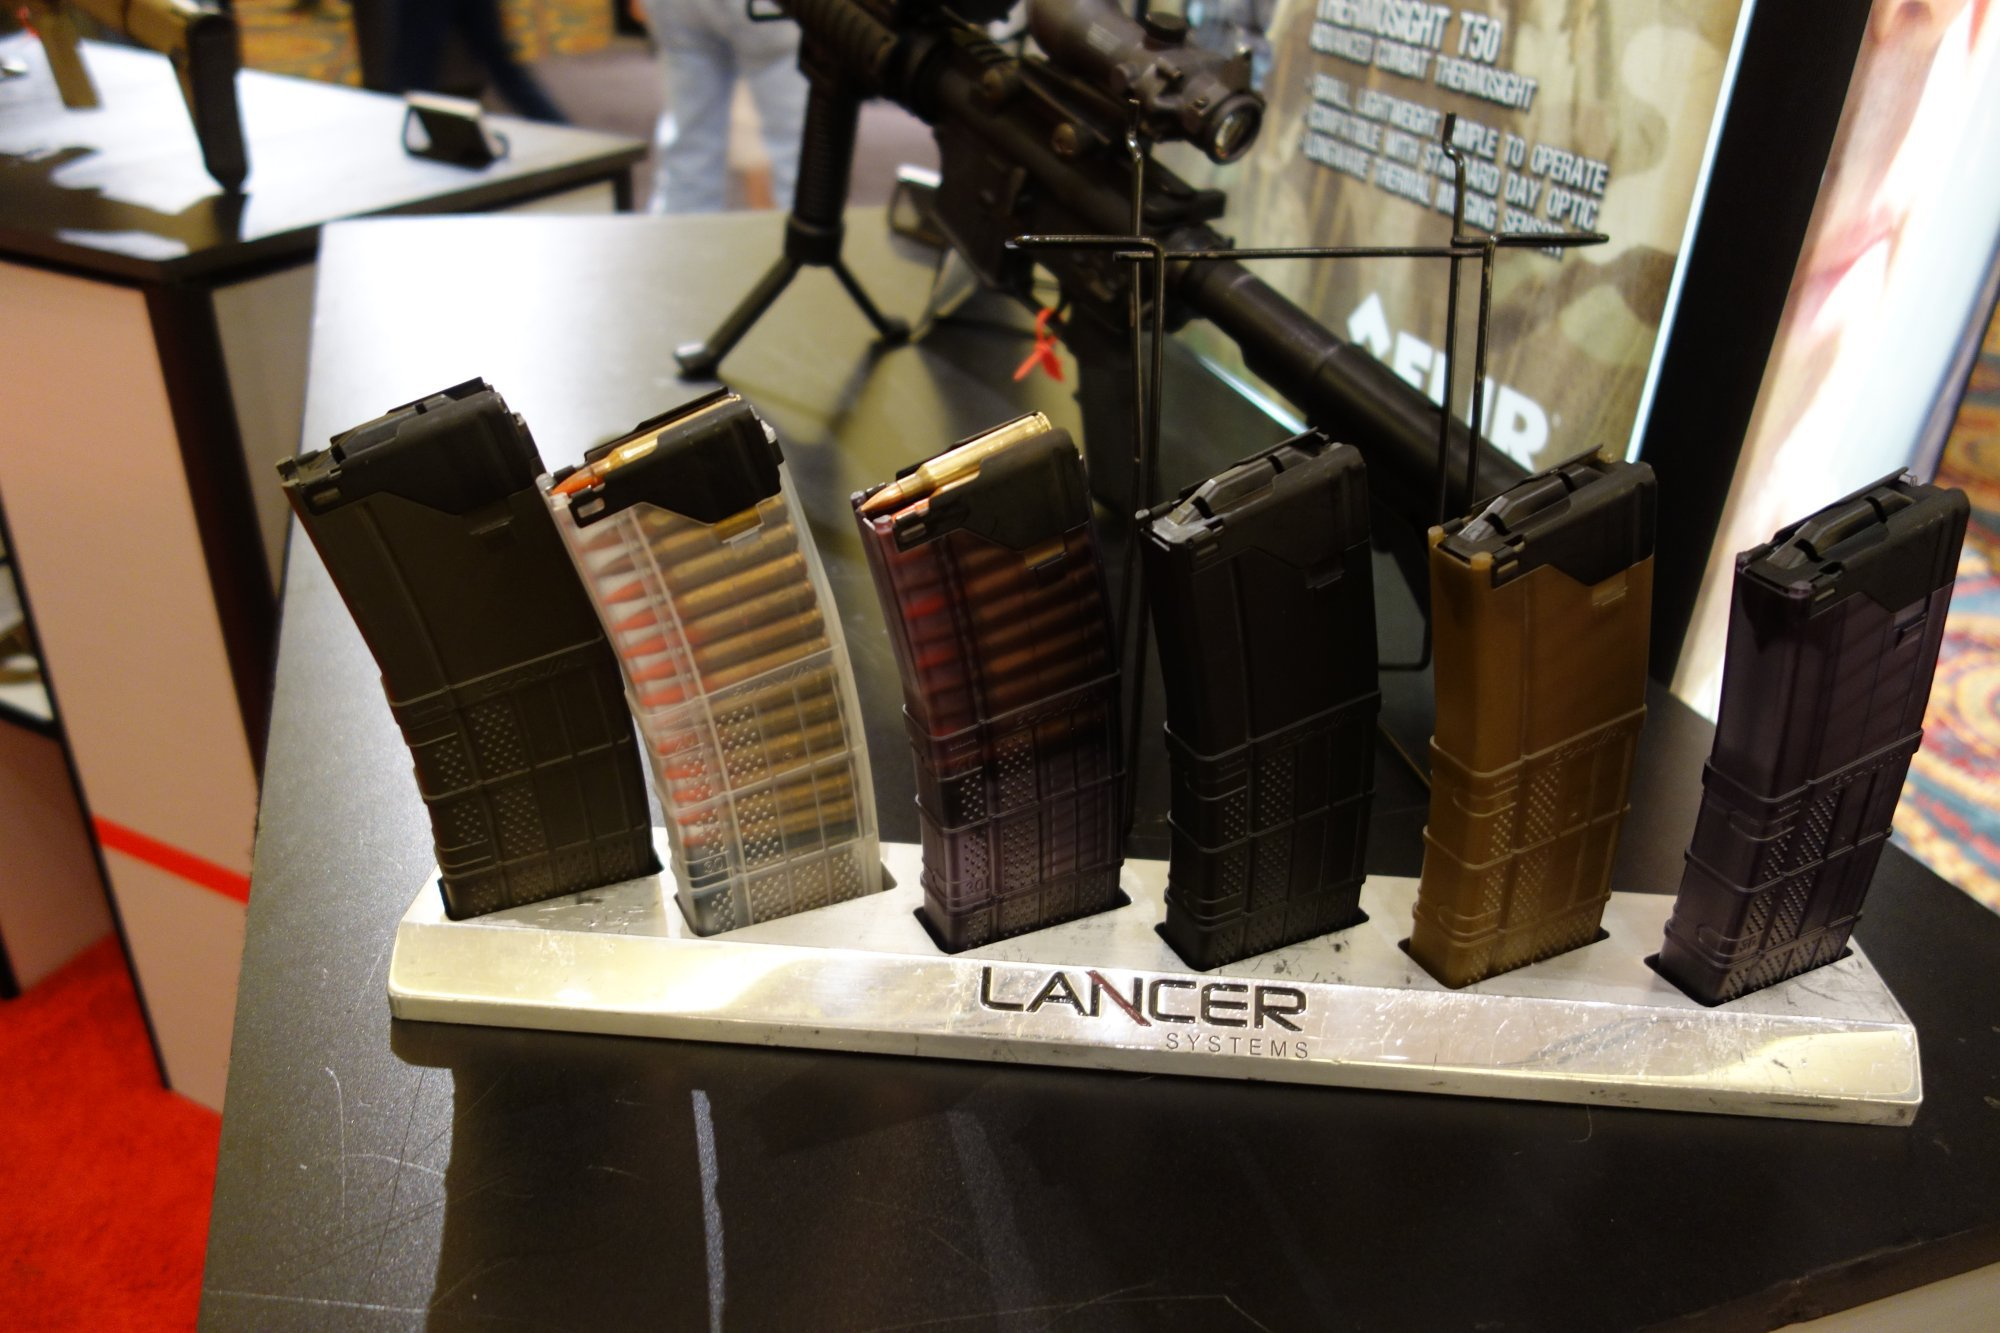 Lancer Systems Gen 2 L5 Translucent Advanced Warfighter Magazine AWM Polymer 30 Round 5.56mm AR 15 Rifle Mag SHOT Show 2013 David Crane DefenseReview.com DR 1 Gen 2 Lancer Systems L5 Translucent Advanced Warfighter Magazine (AWM): Truly Translucent Polymer 30 Round AR 15 Rifle/Carbine/SBR Mag!